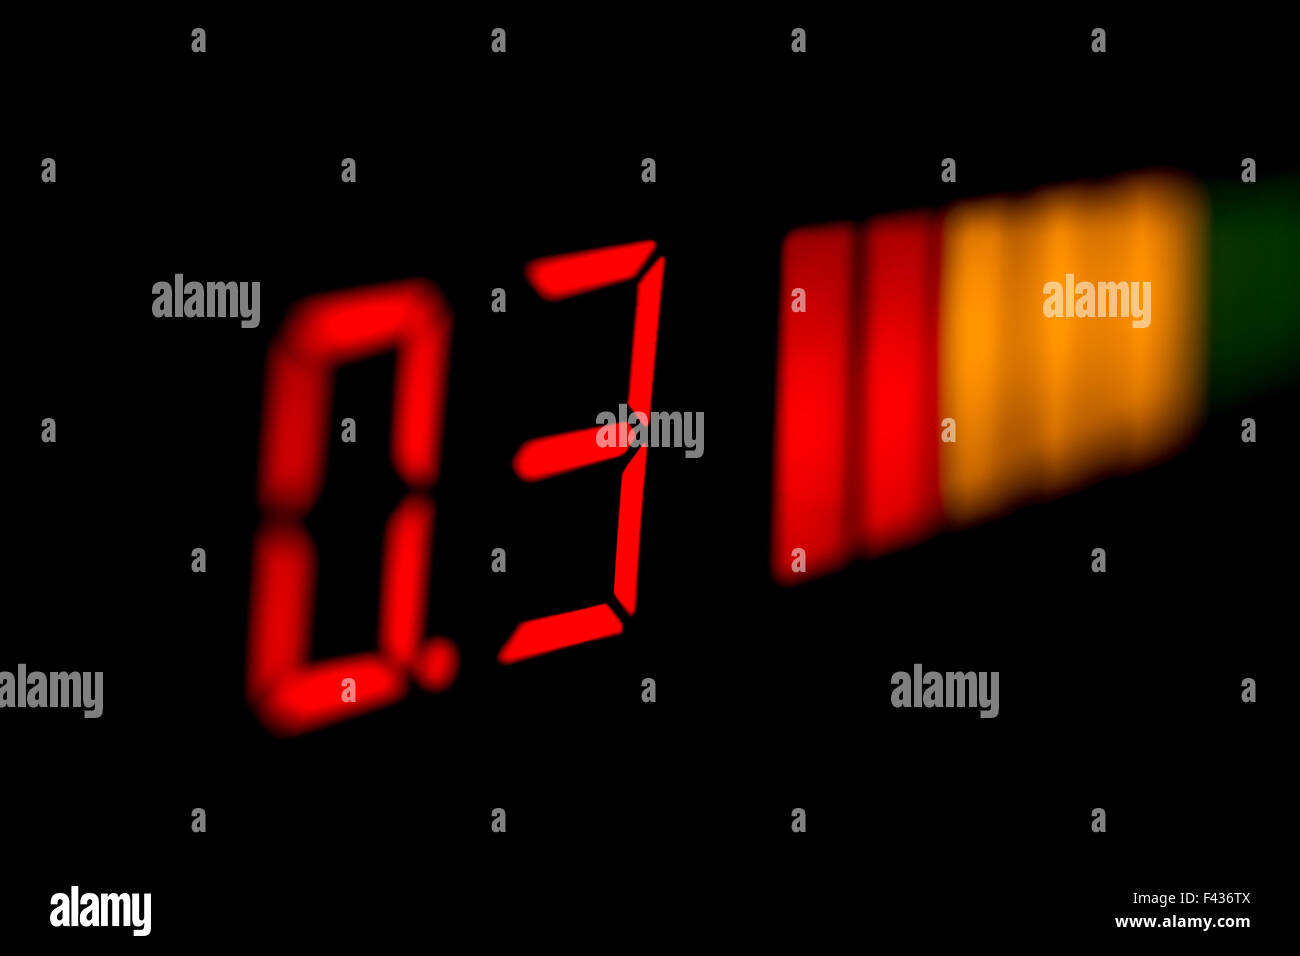 Digital display car parking sensor - Stock Image